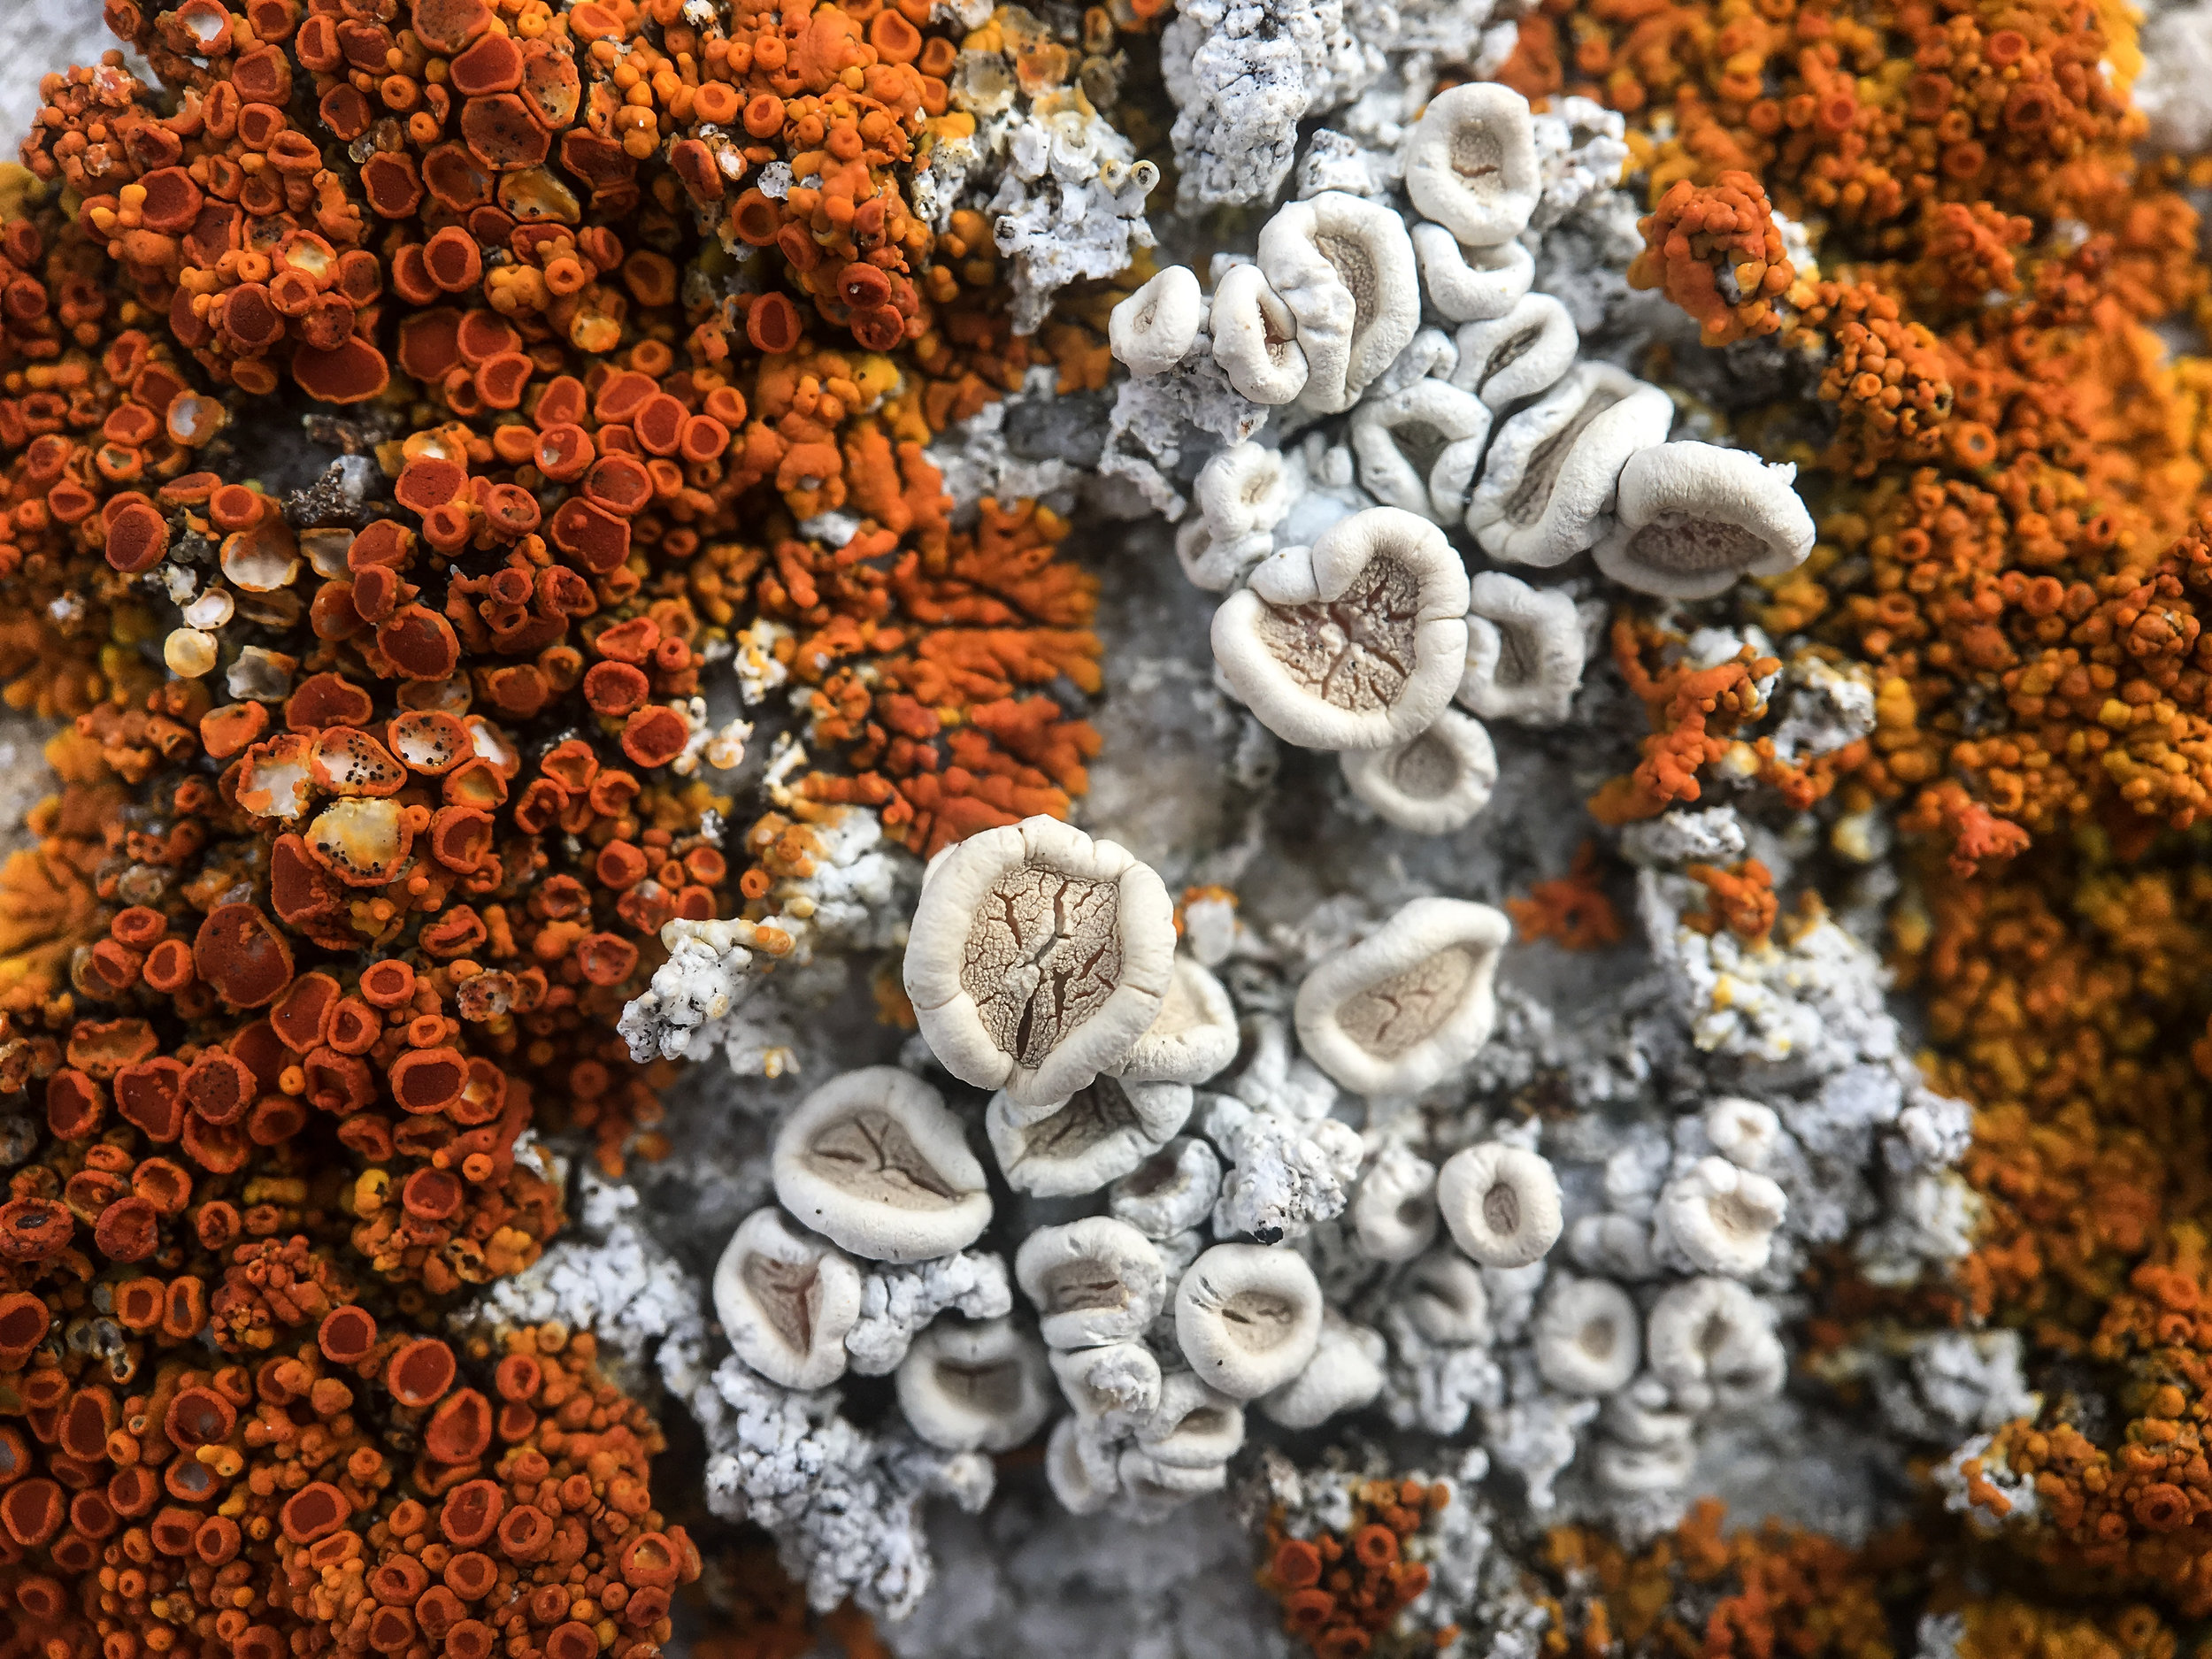 - Approaching the rocks in the Yendegaia bay a different world appears. The incredible diversity of shapes and patterns of the crustose and foliose lichens on a square inch of those rocks is a source of amazement for a nerd like me. I'm in awe of such micro-organisms but know little of their scientific names. A